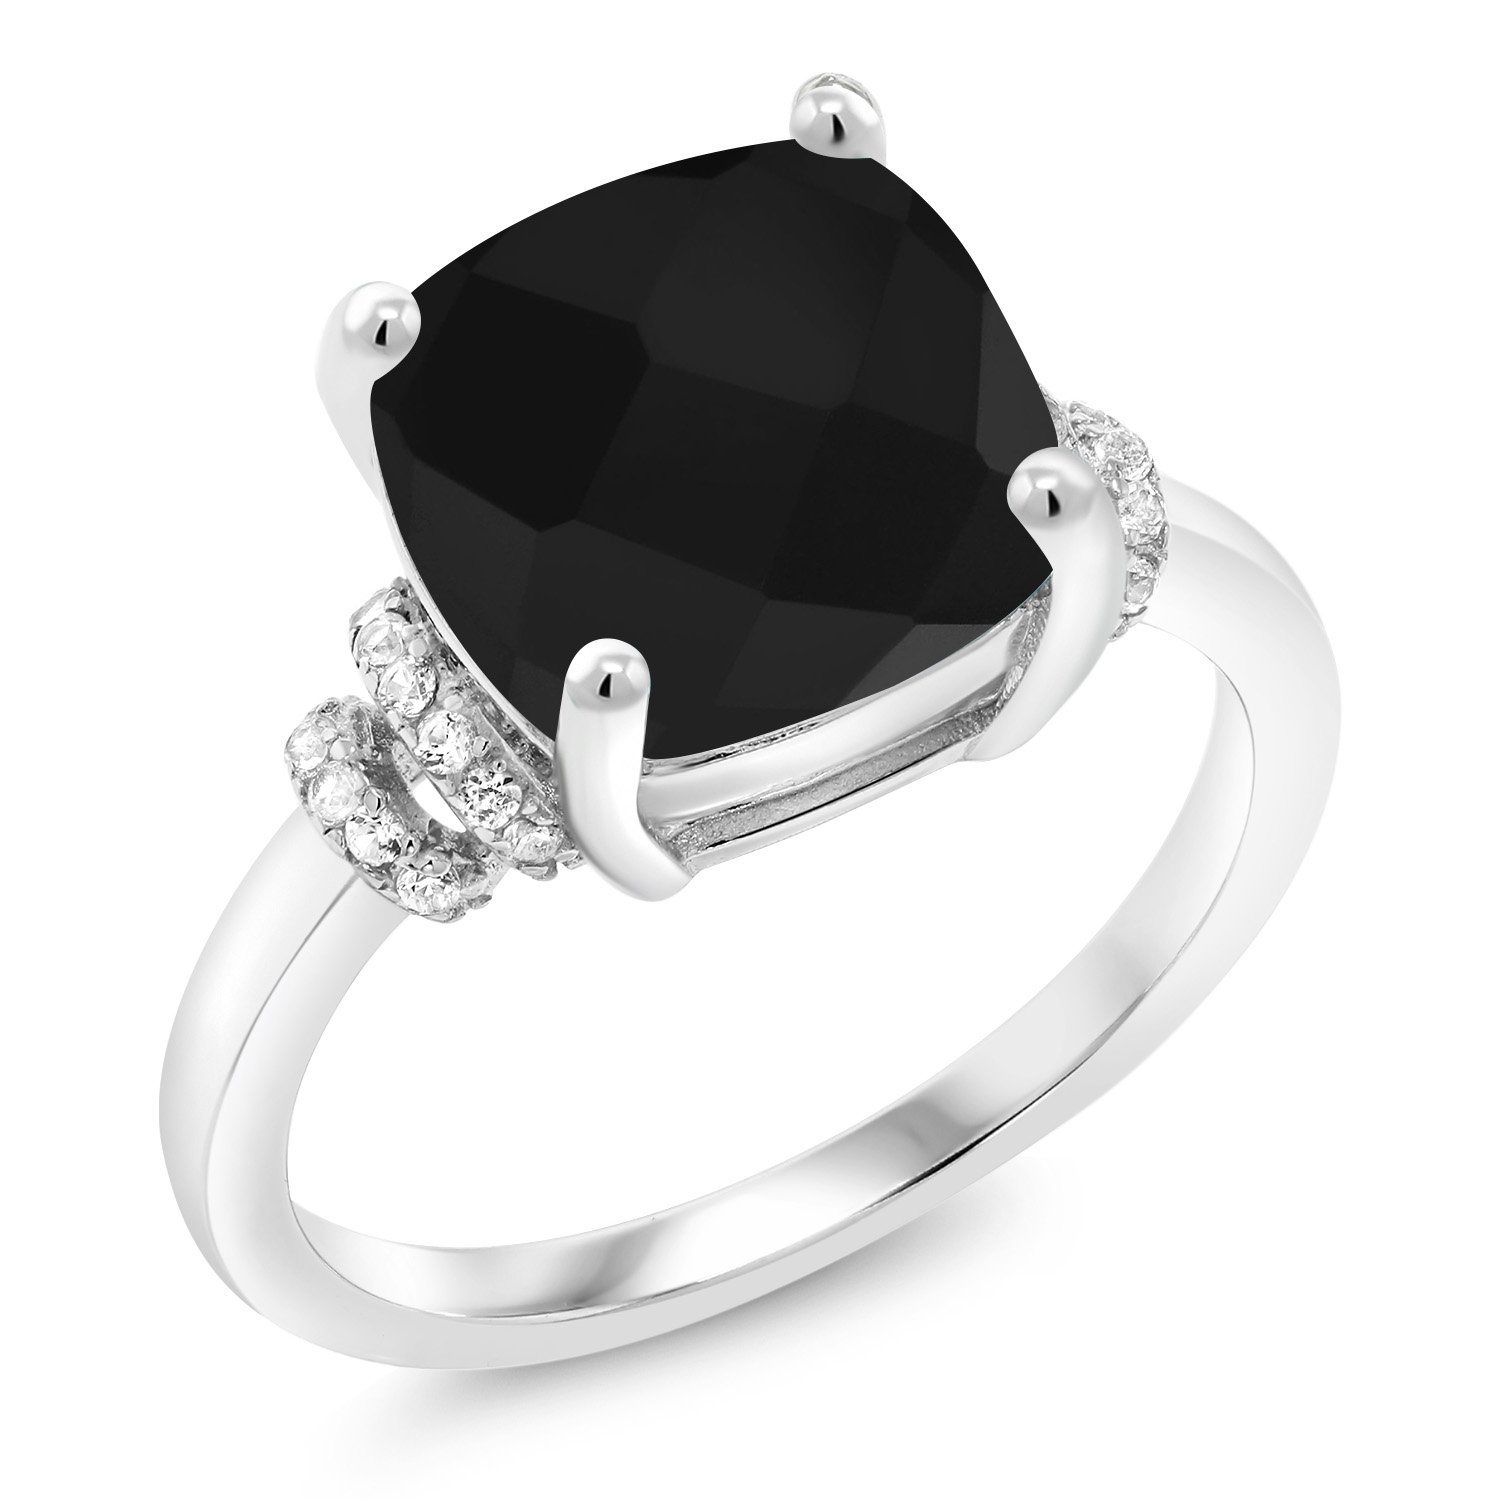 3.89 Ct Cushion Checkerboard Black Onyx 925 Sterling Silver Ring